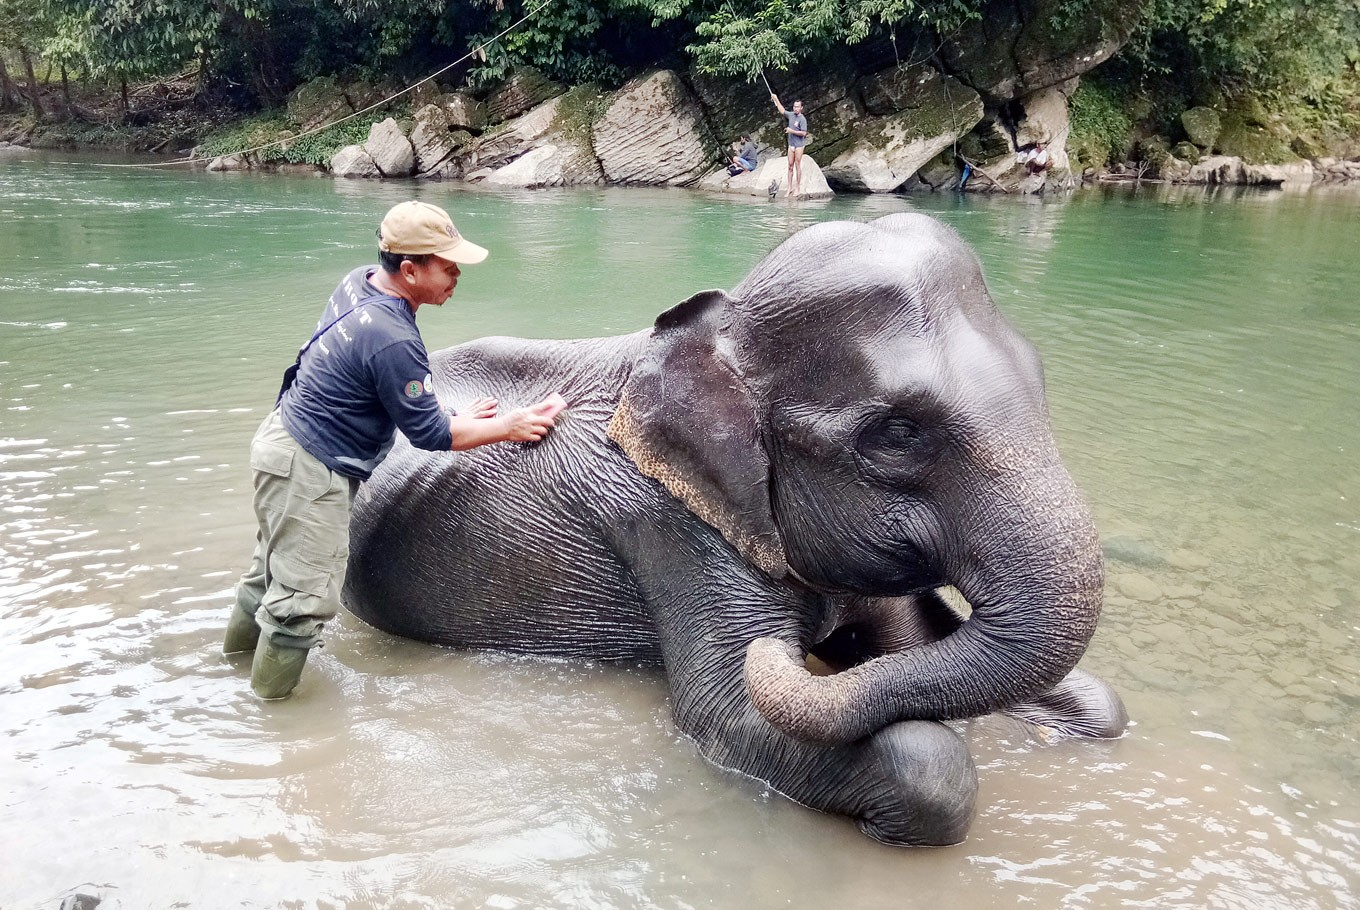 Patience pays off for elephants' keepers in North Sumatra